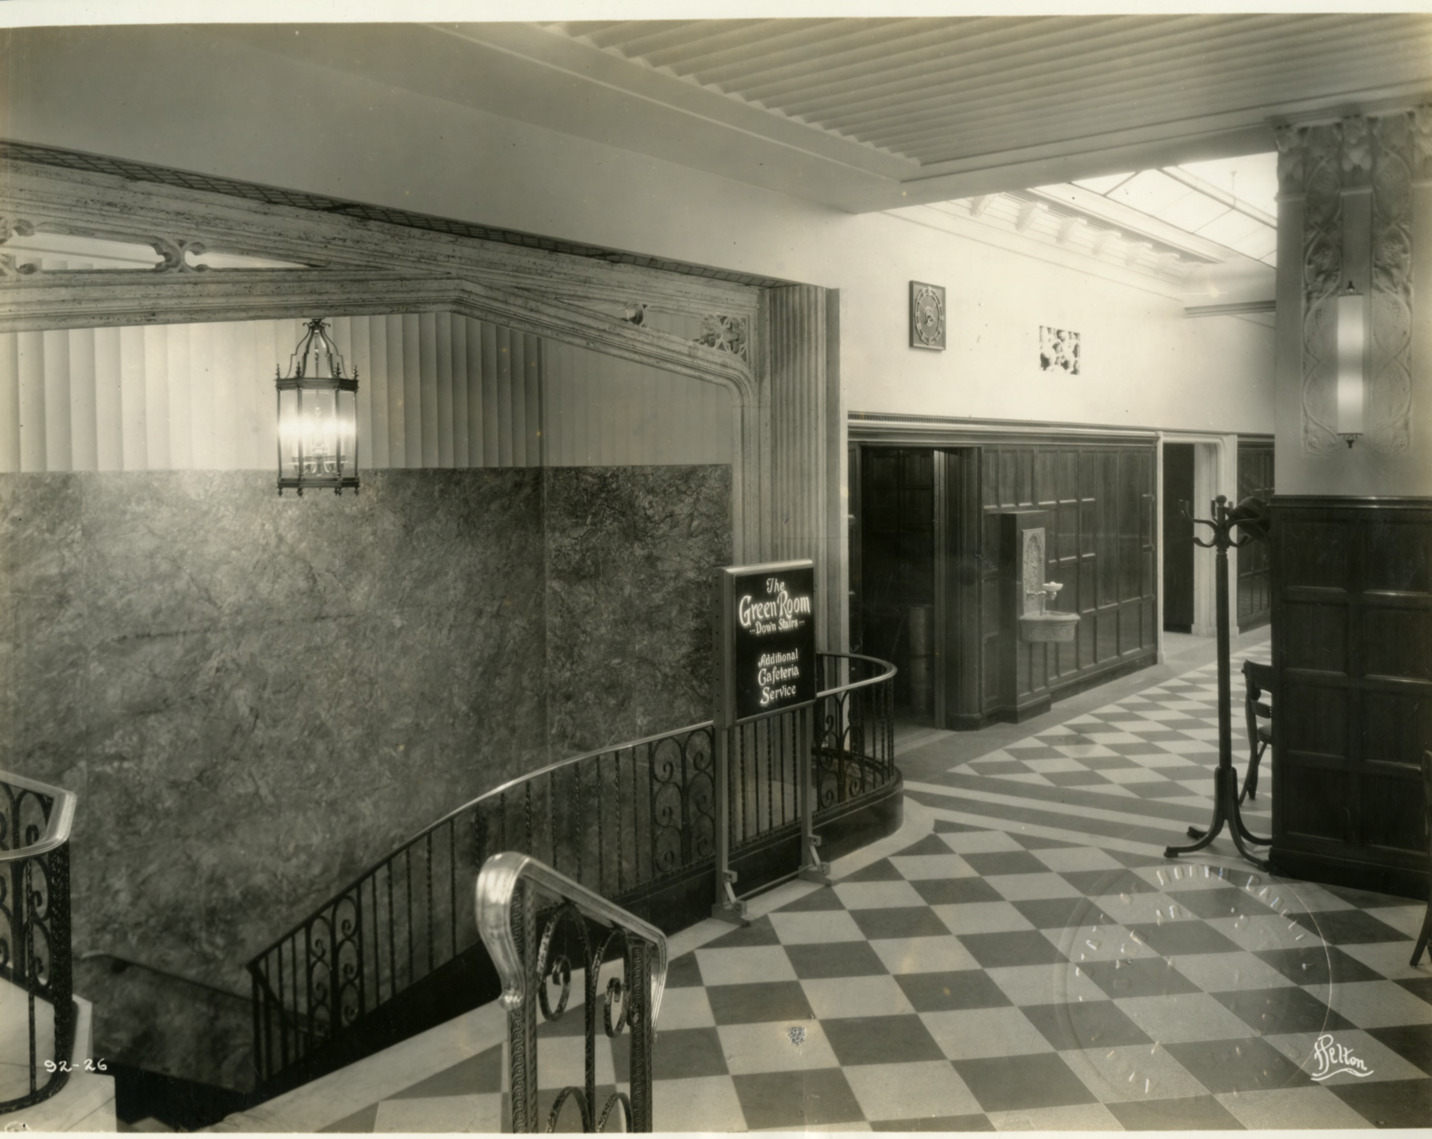 S&W Cafeteria (Washington, D.C.) - Lobby